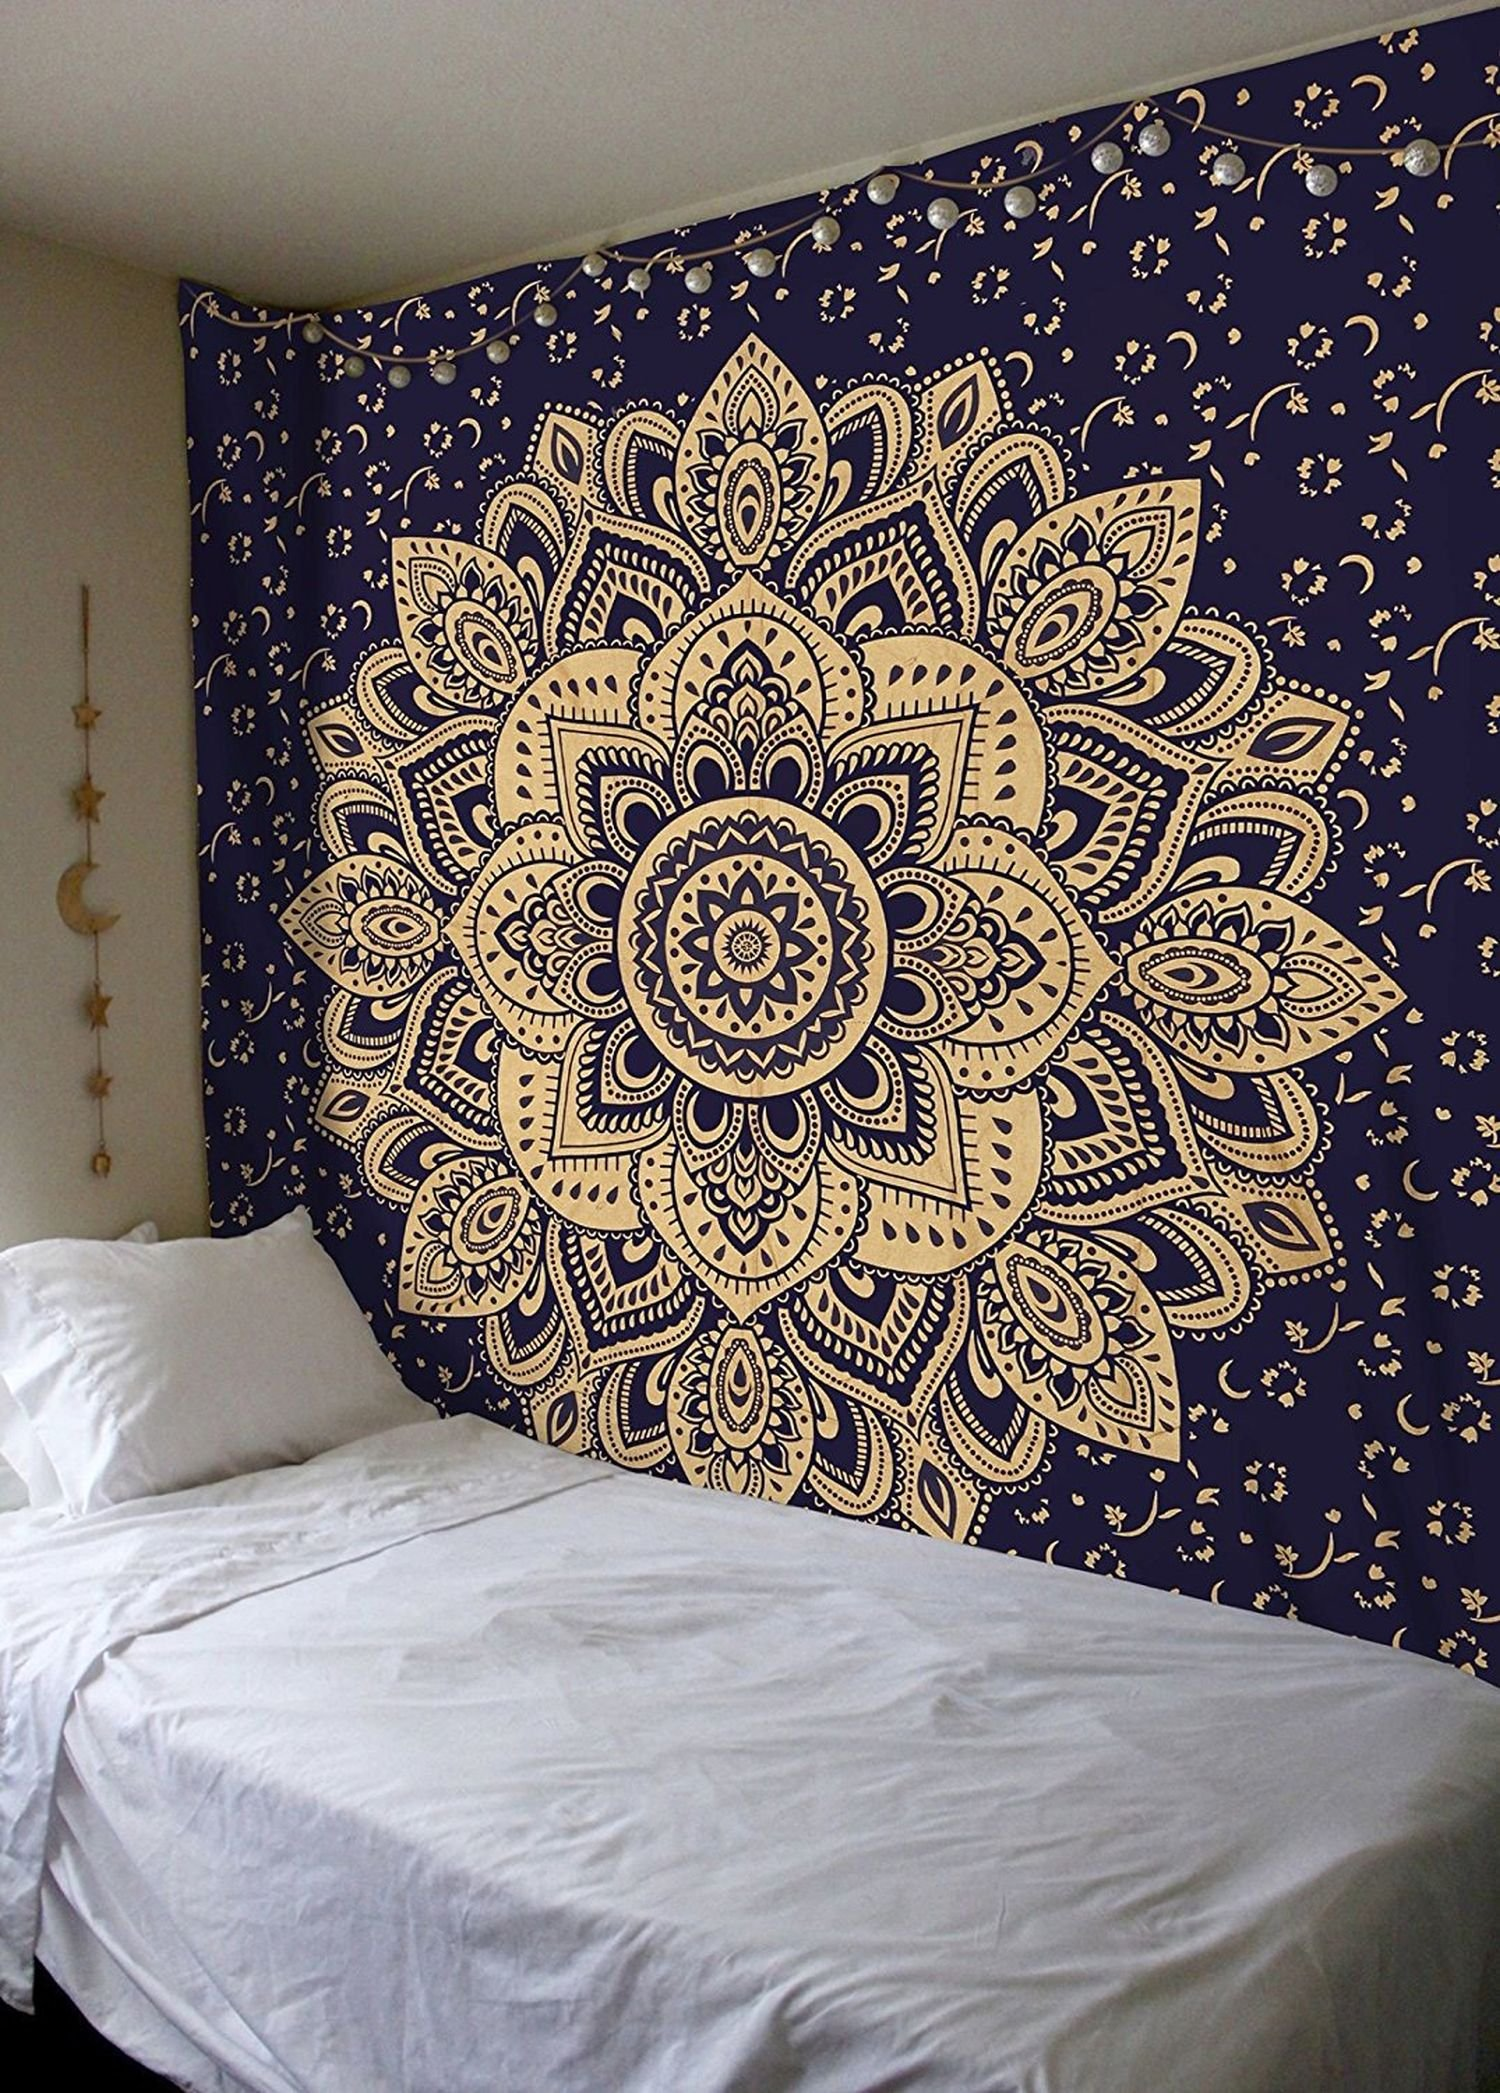 Madhu International King Size New Launched Blue Gold Passion Ombre Mandala Tapestry By, Boho Mandala Tapestry, Wall Hanging, Gypsy Tapestry, 90 X 108 inches